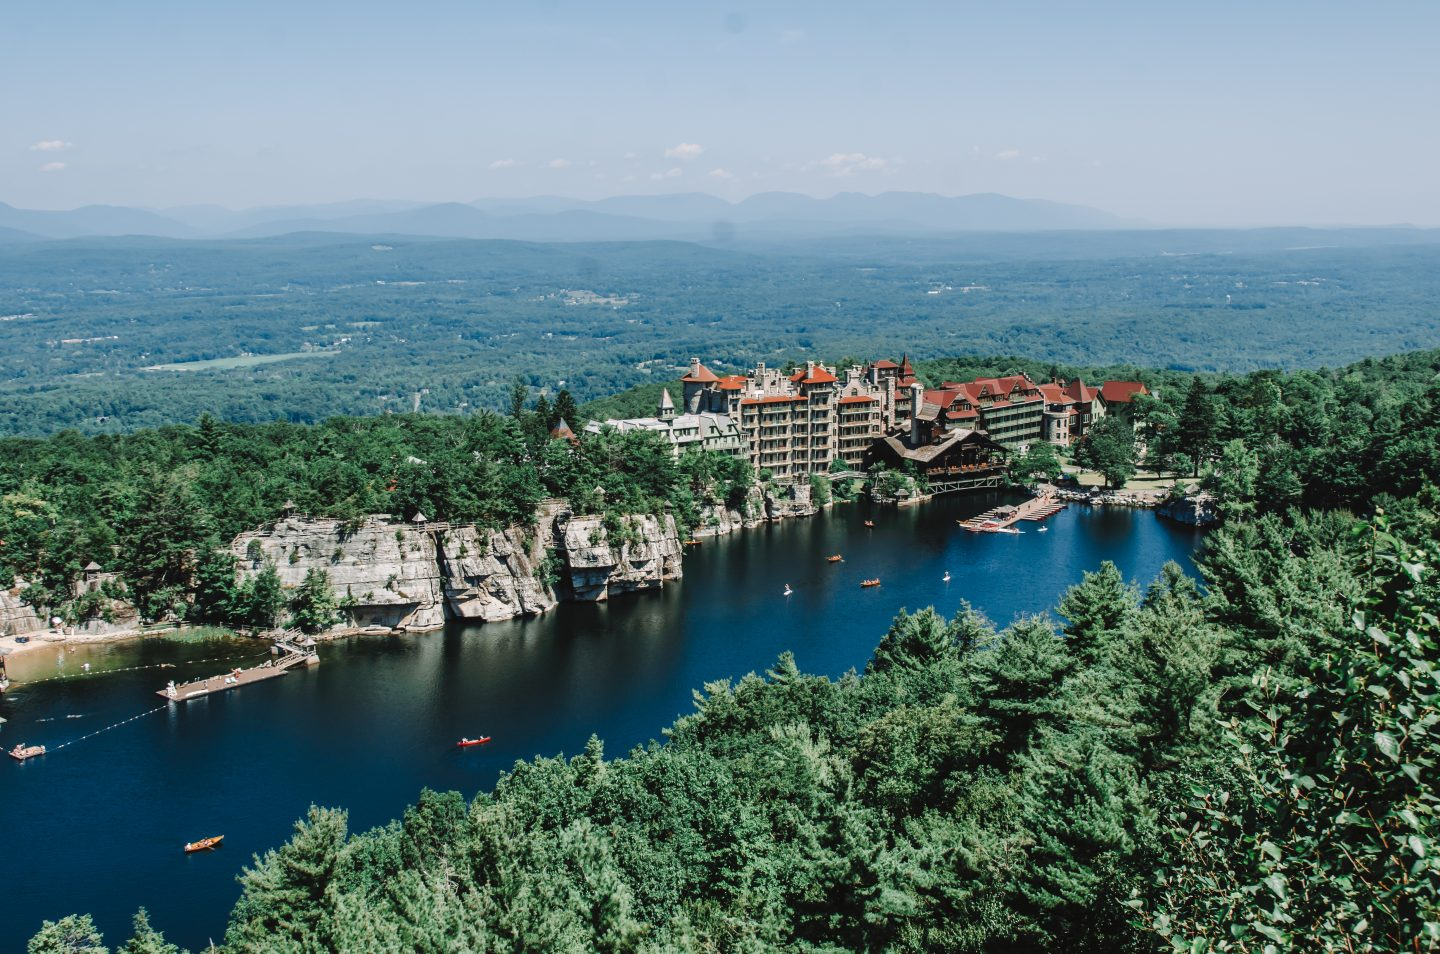 Mohonk Preserve - Mohonk mountain house from above